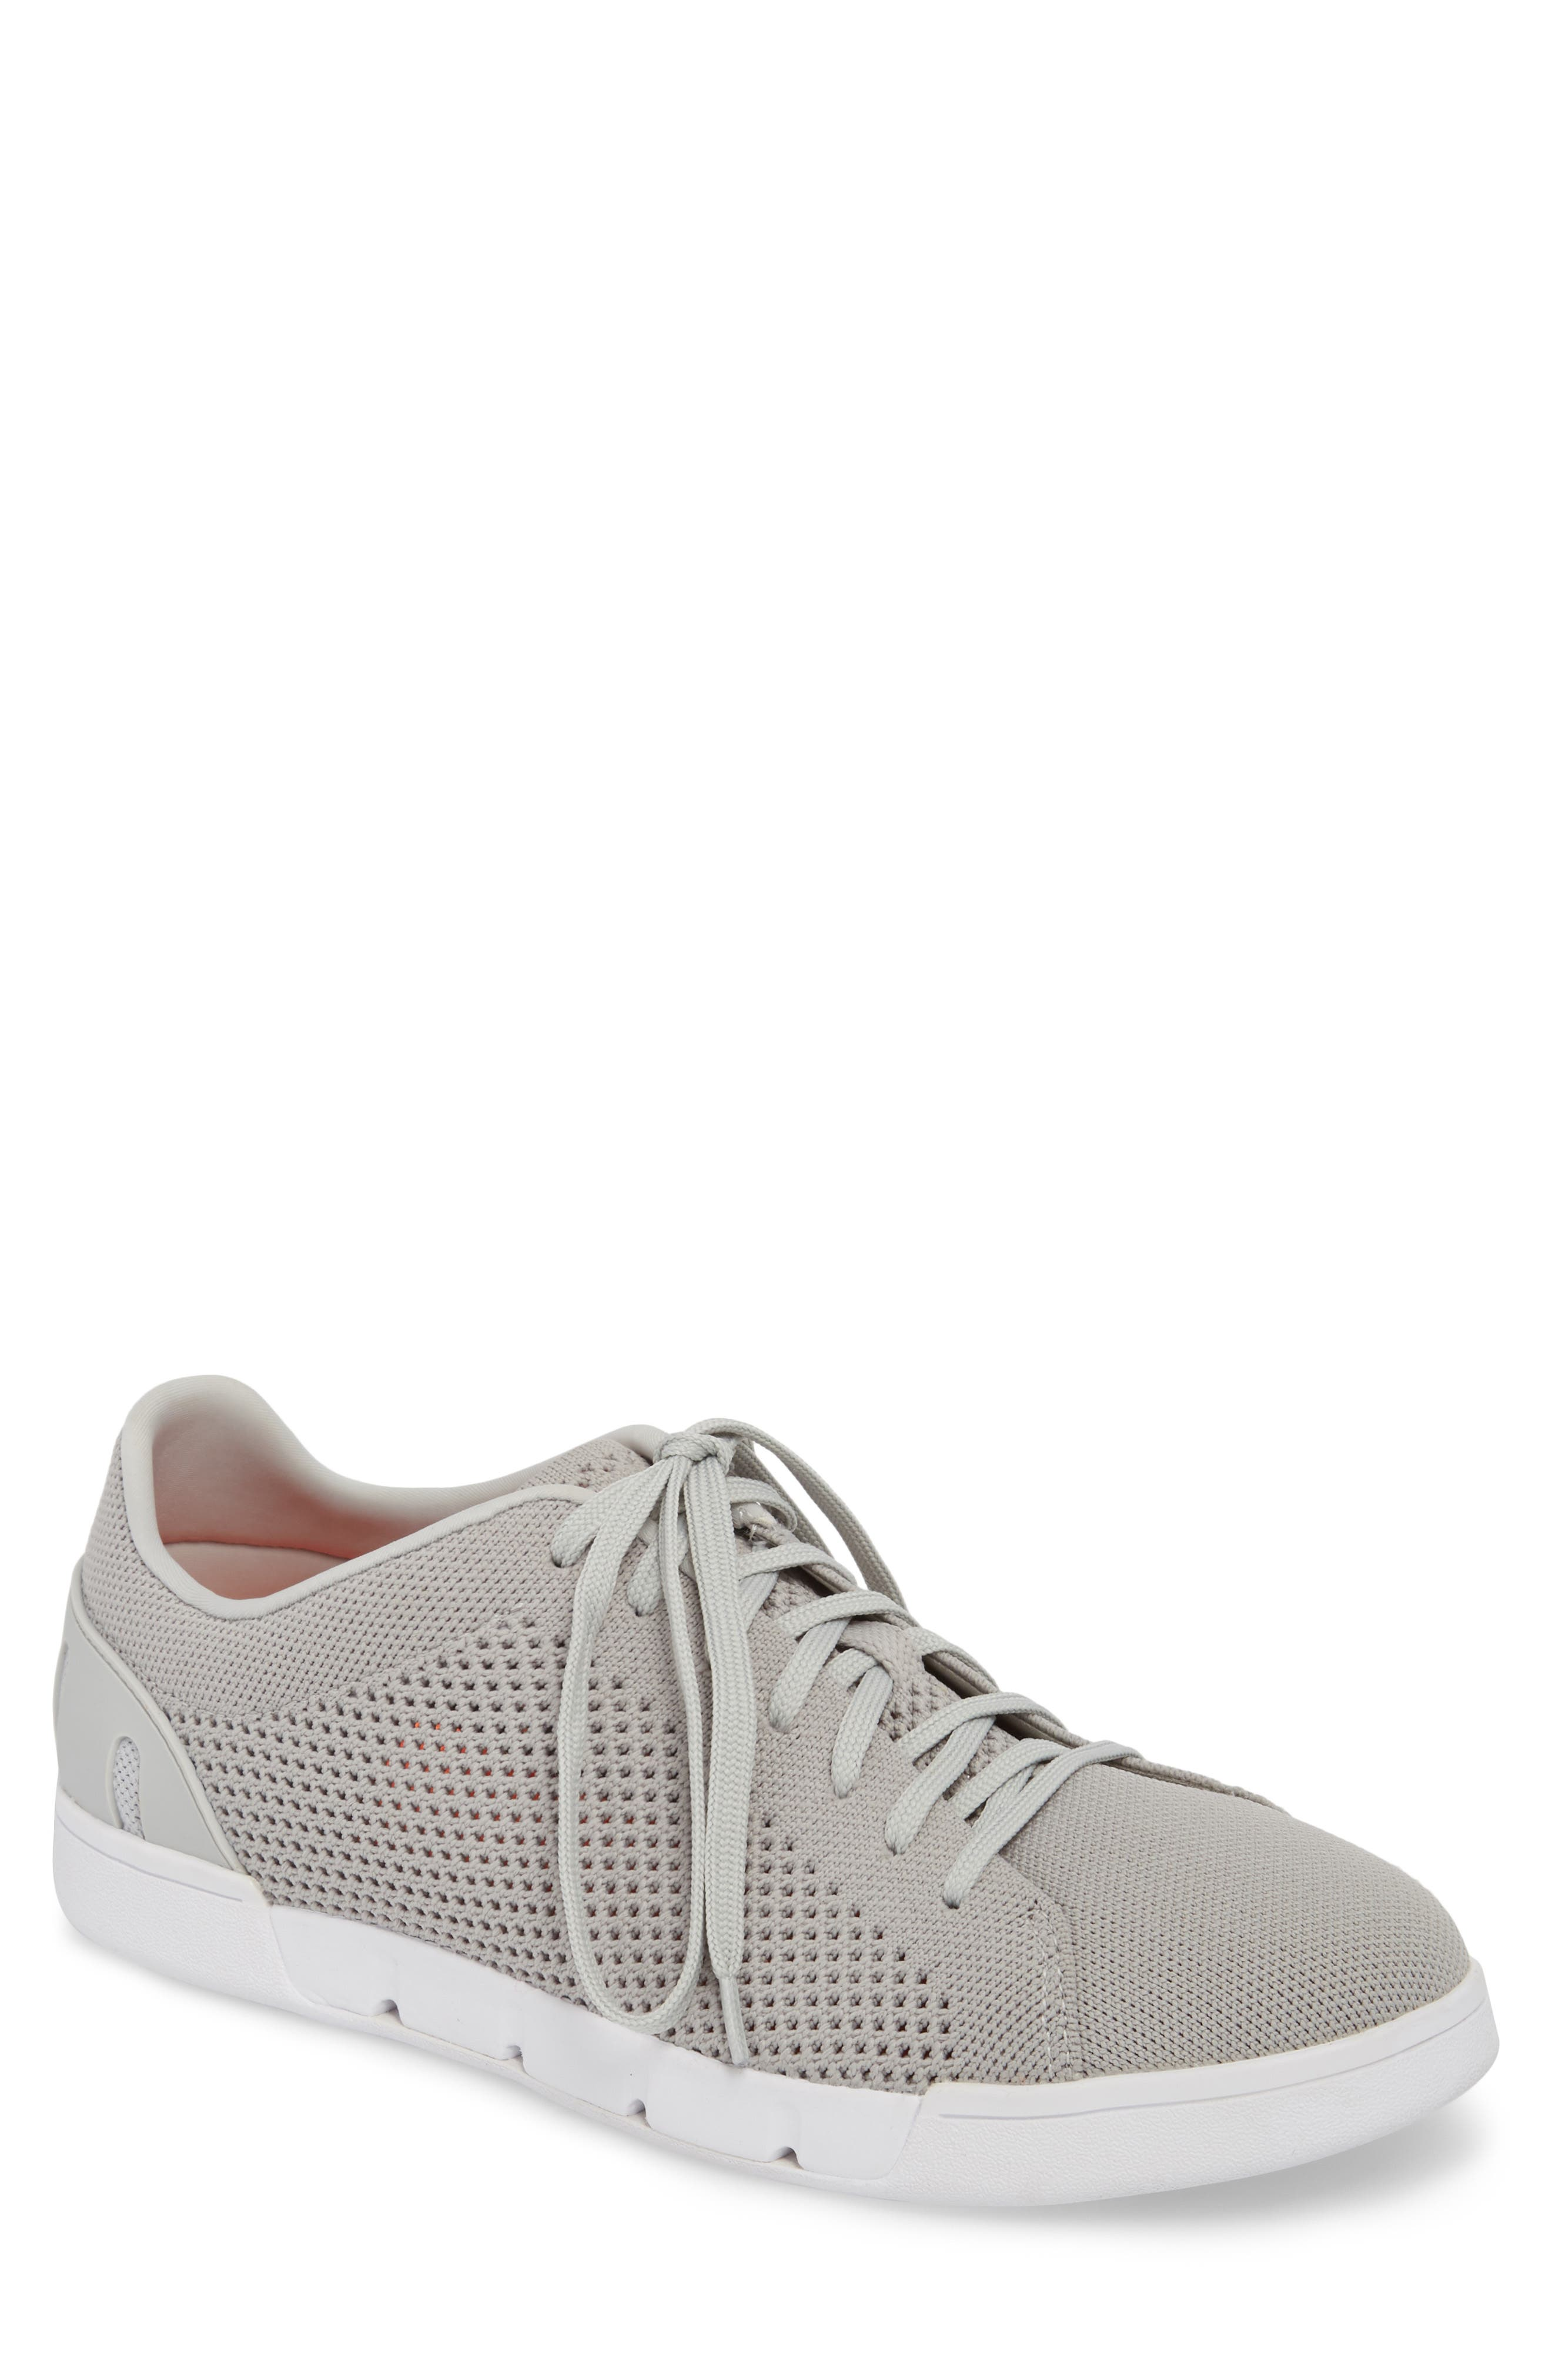 Breeze Tennis Washable Knit Sneaker,                             Main thumbnail 1, color,                             Light Grey/ White Fabric